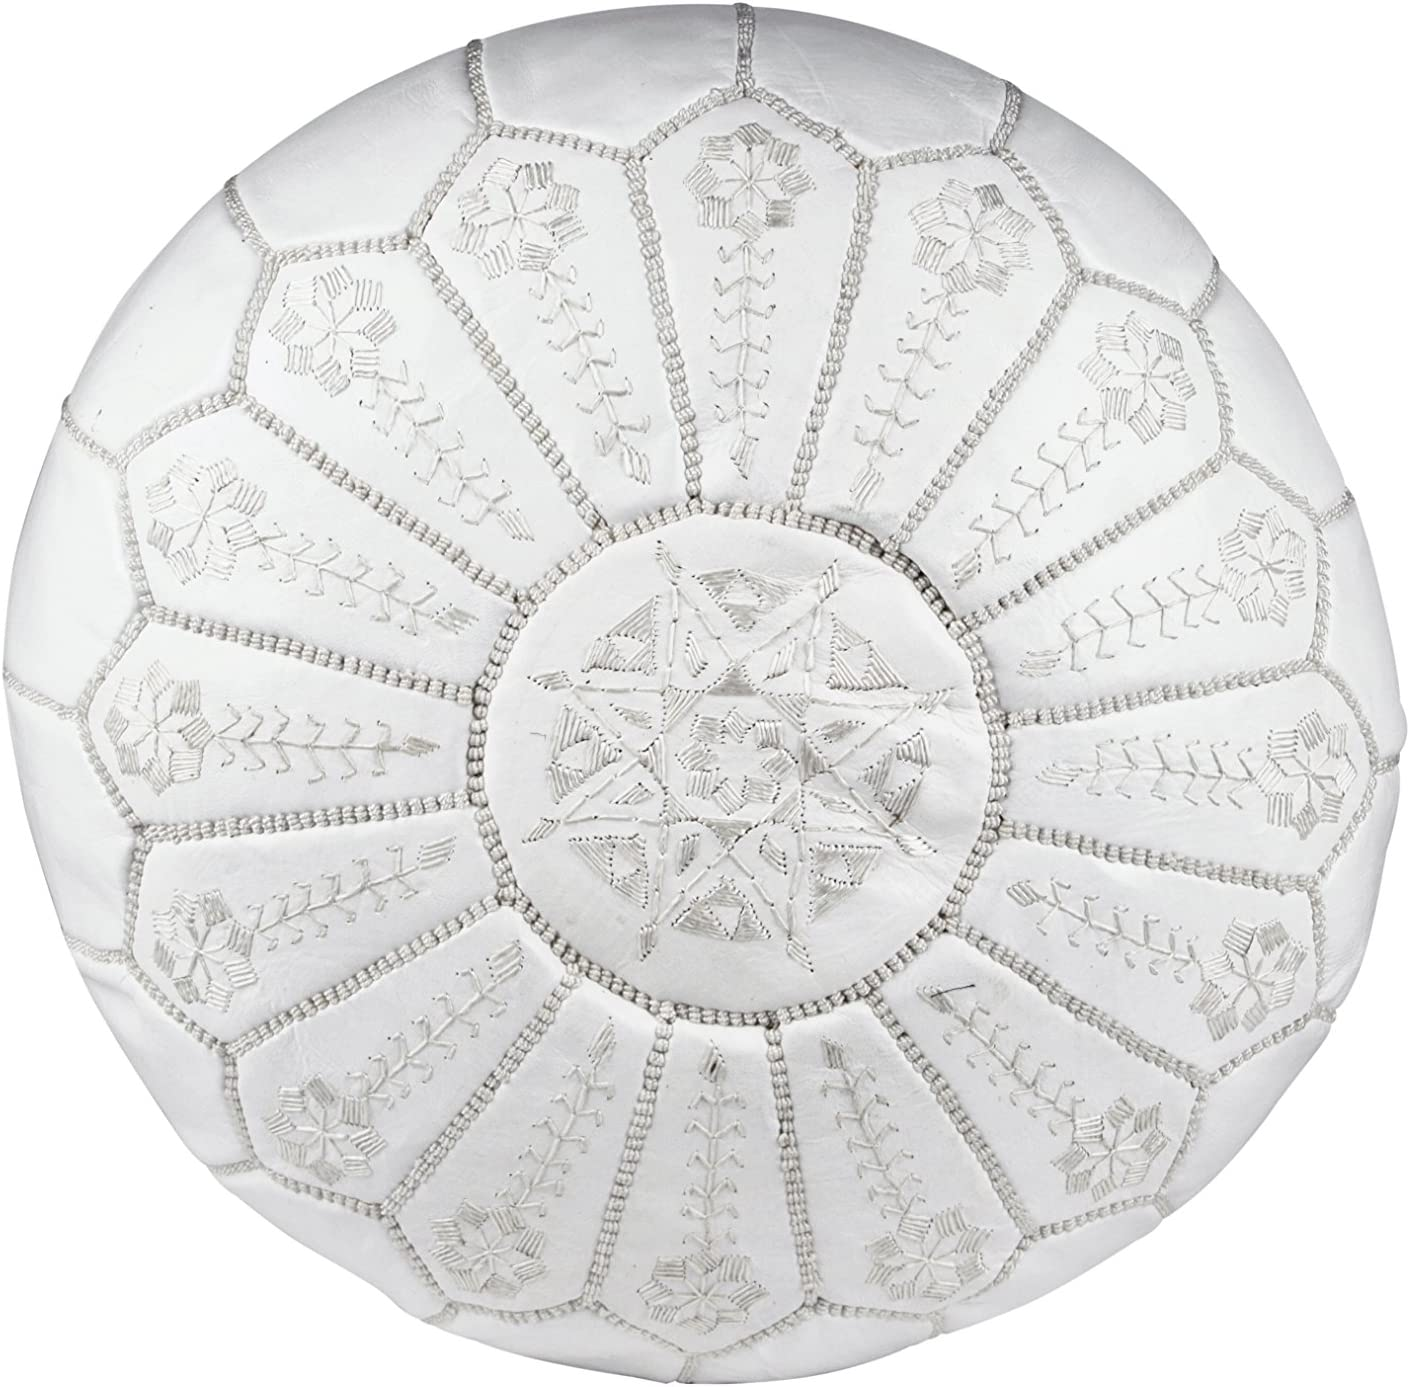 Casablanca Market Moroccan Embroidered Starburst Max 55% OFF Stitched Outlet SALE Cotton